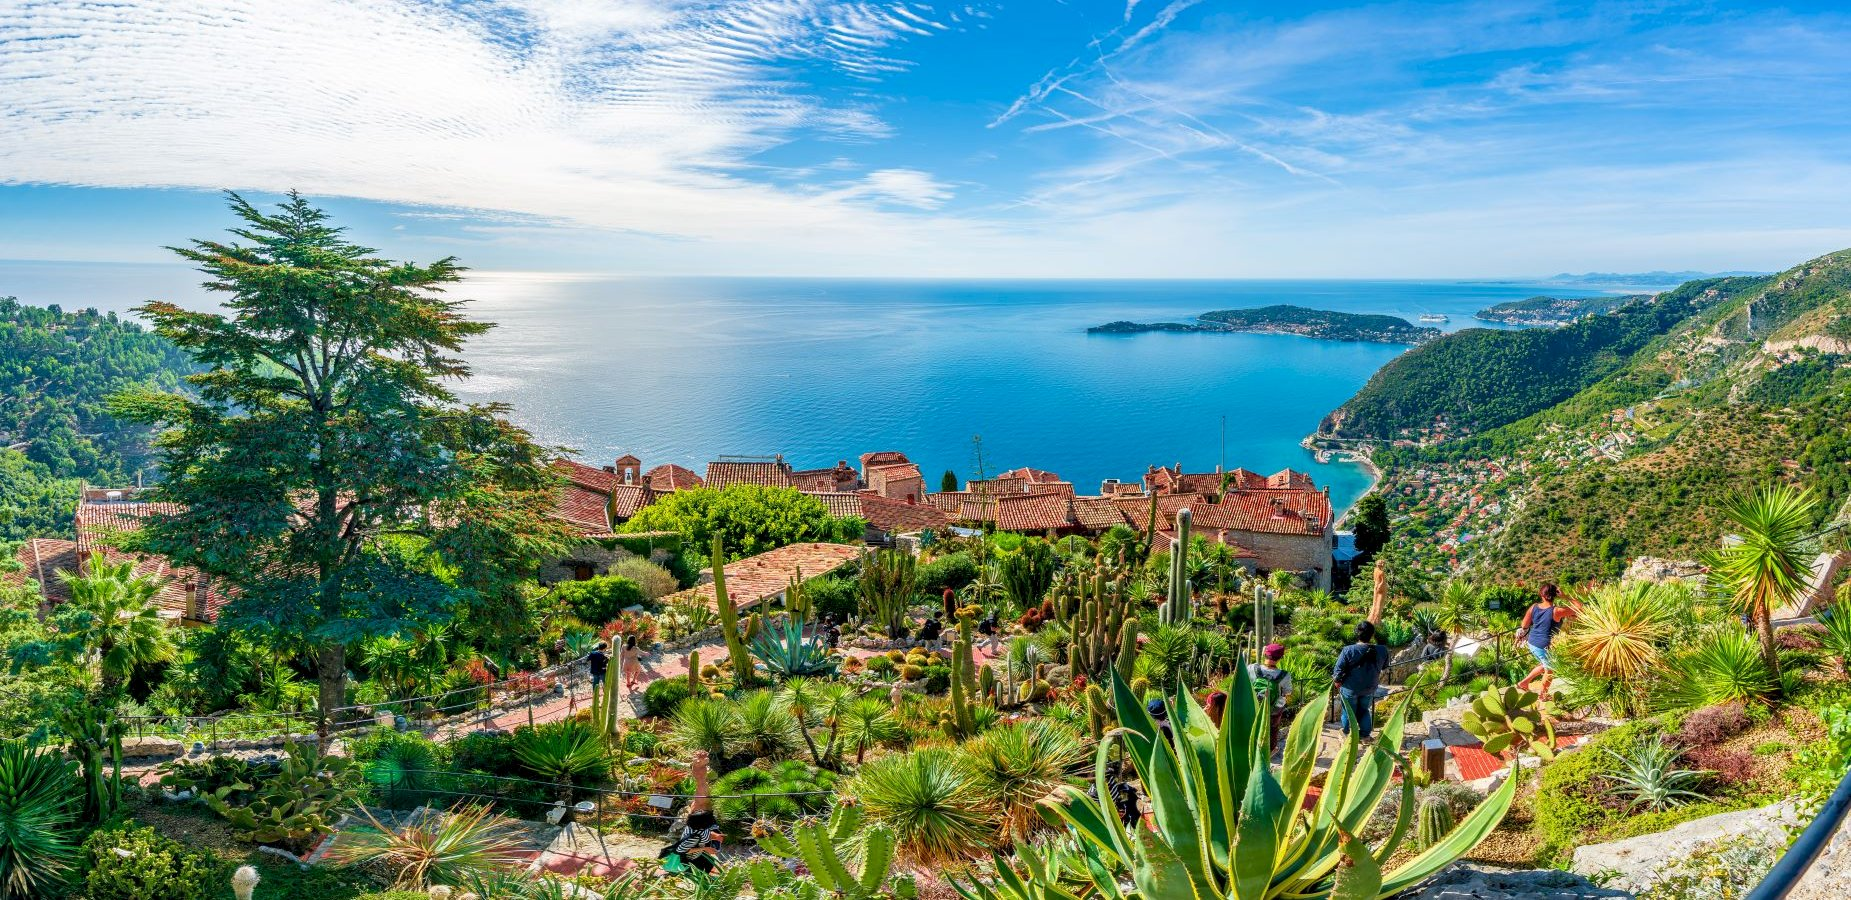 Ophorus Tours - Eze, Monaco & Monte Carlo Small Group Private Shore Excursion From Antibes